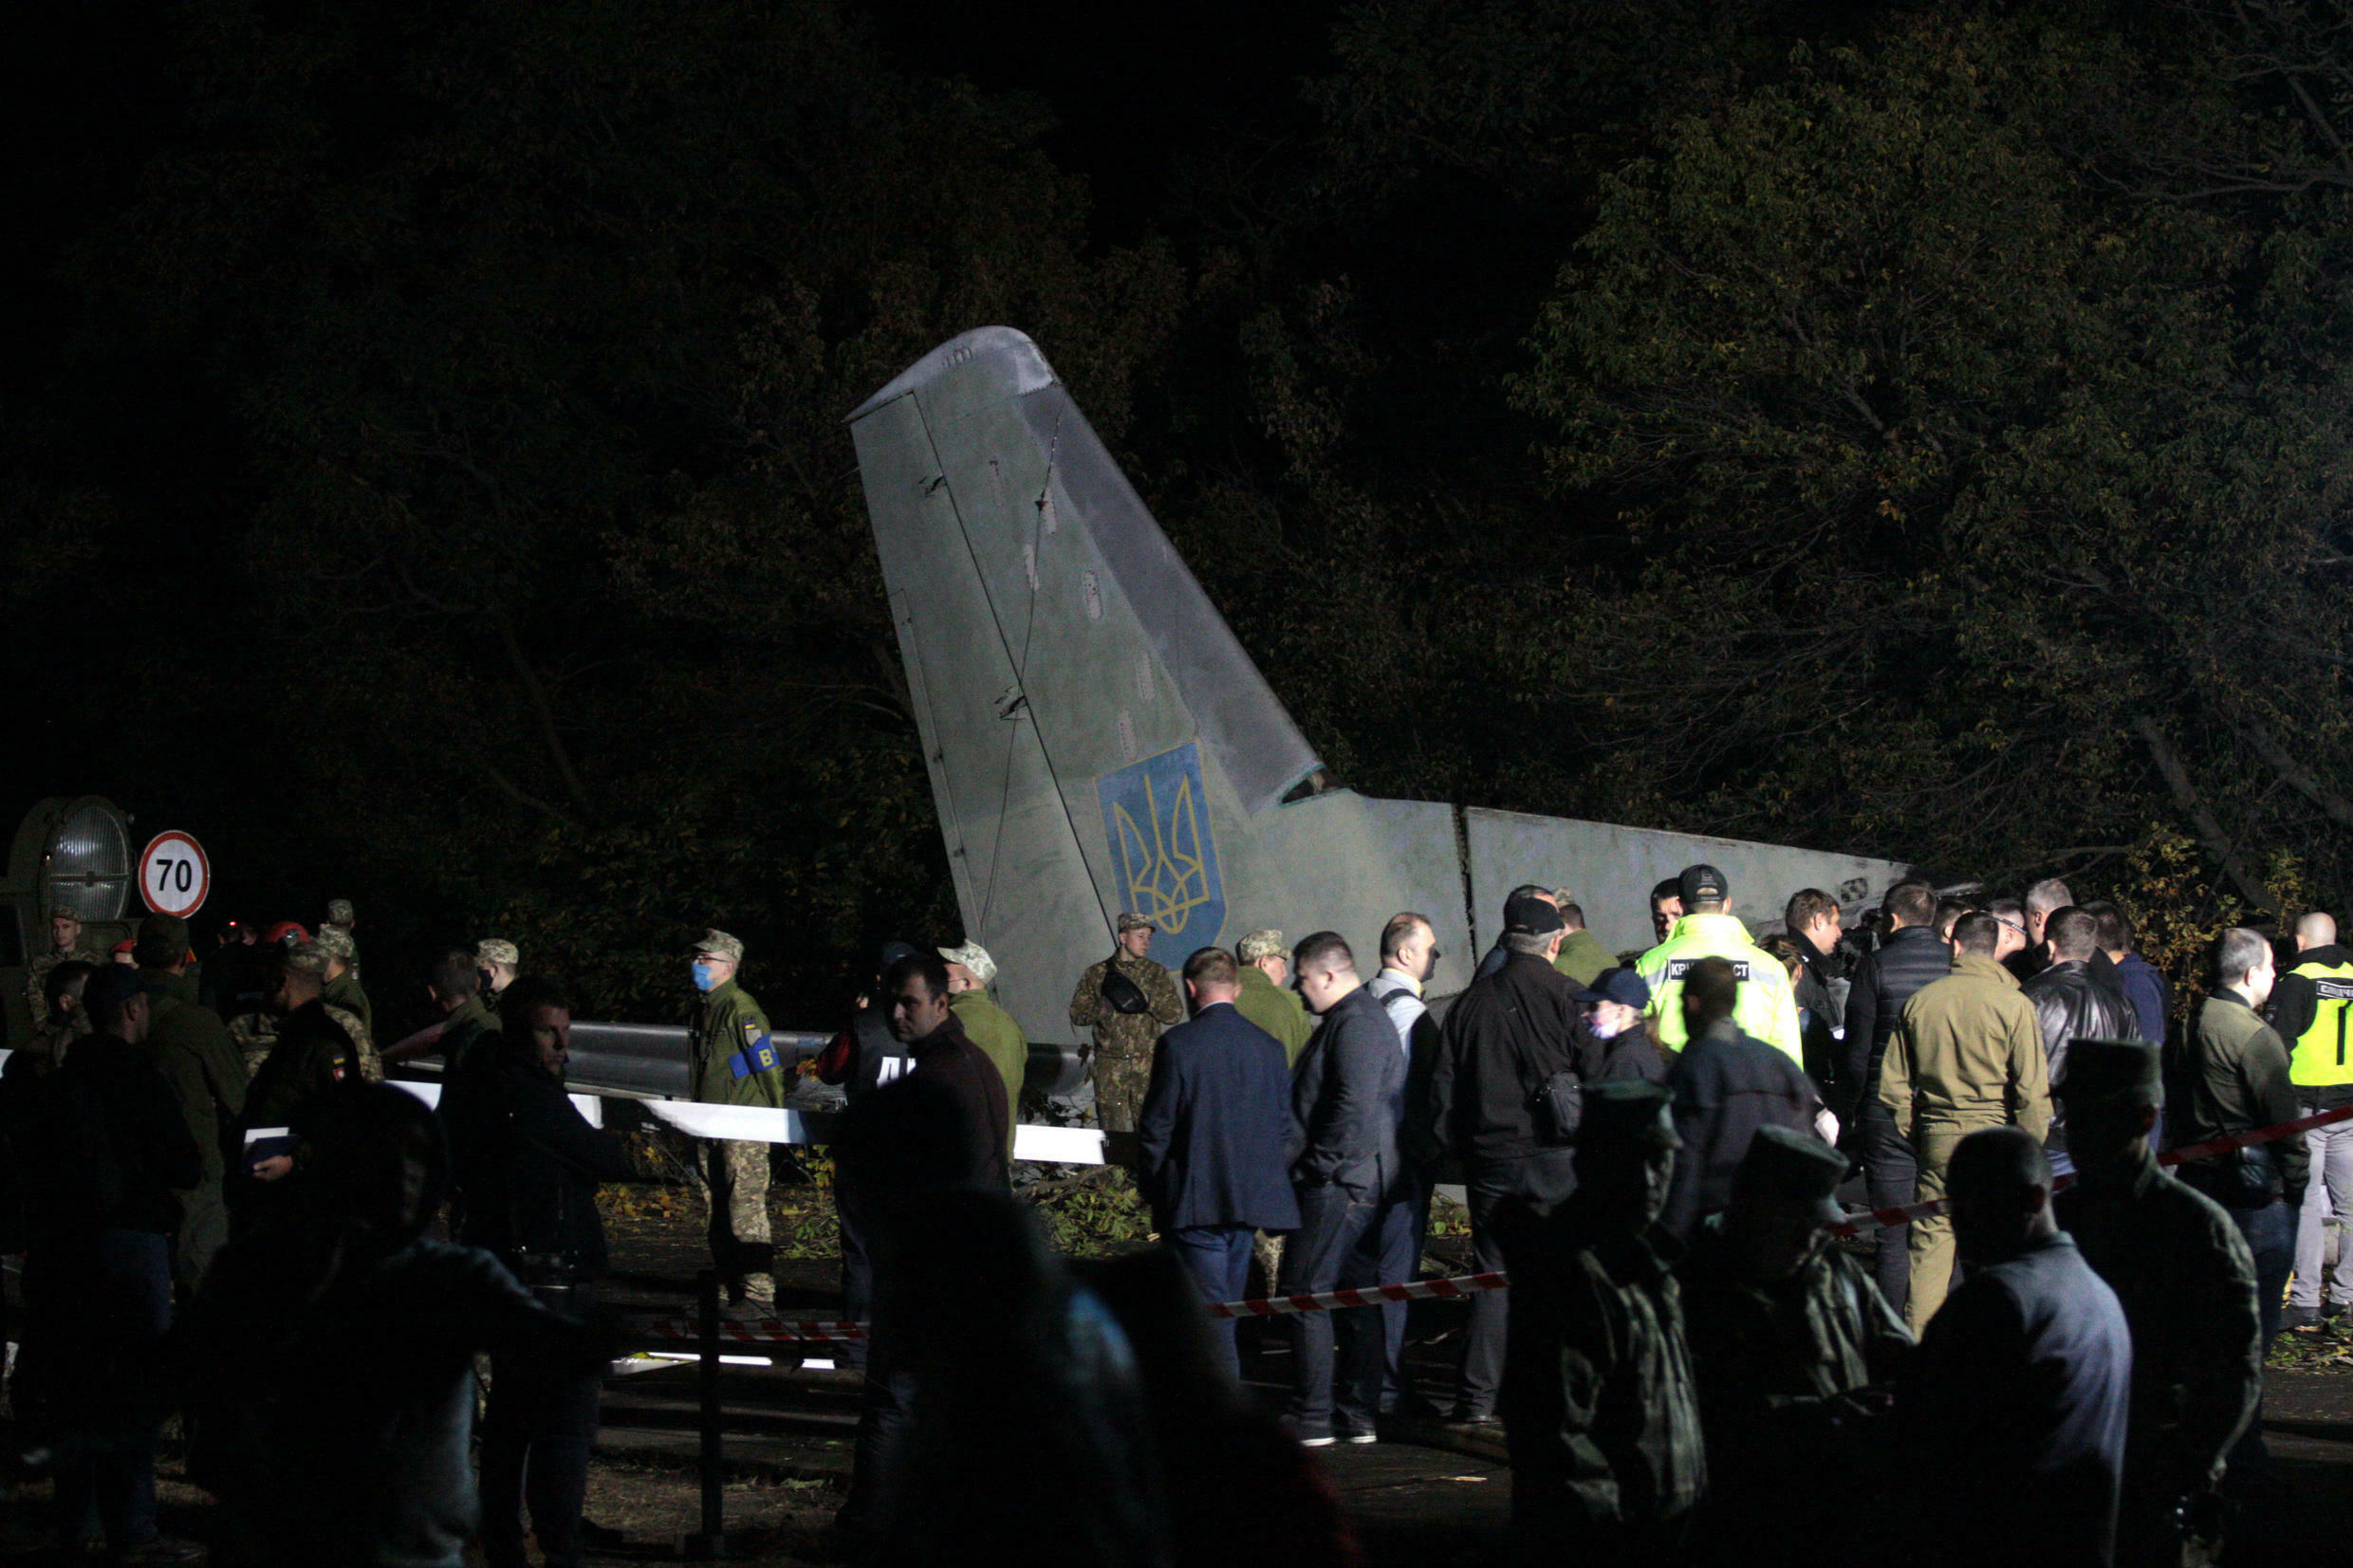 The cause of the crash is being investigated